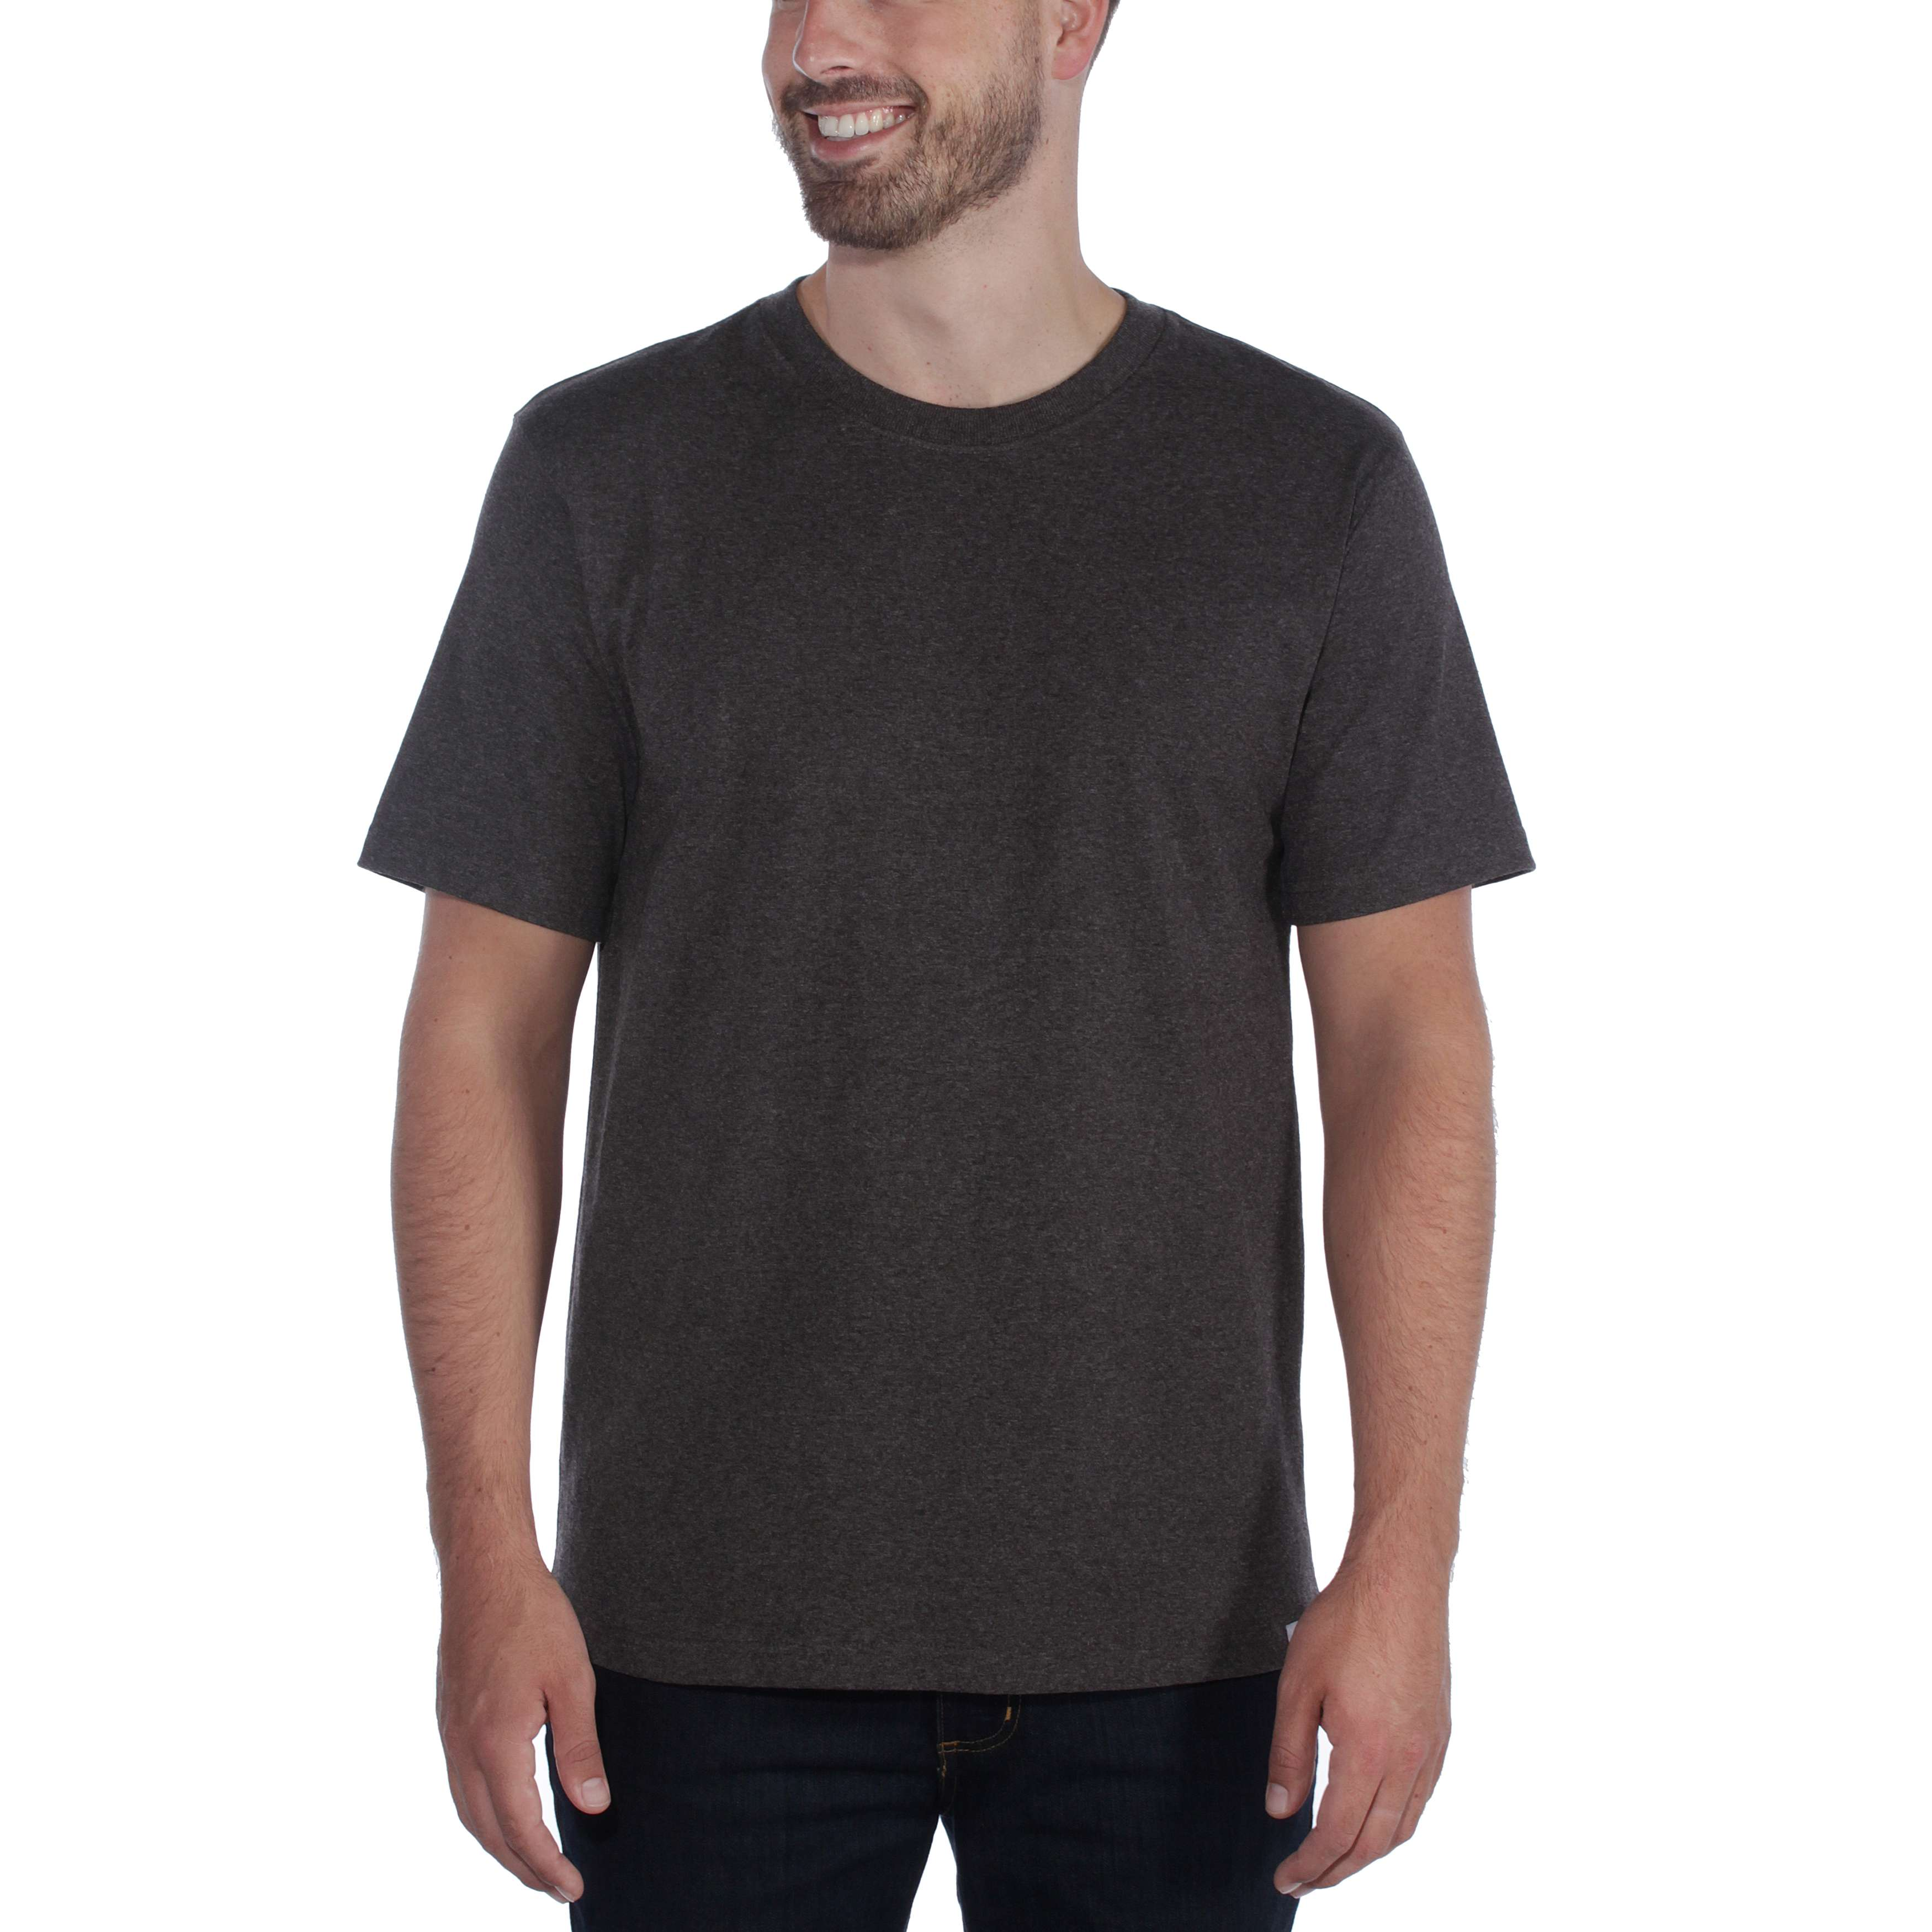 Carhartt Relaxed Fit Short Sleeve T-Shirt